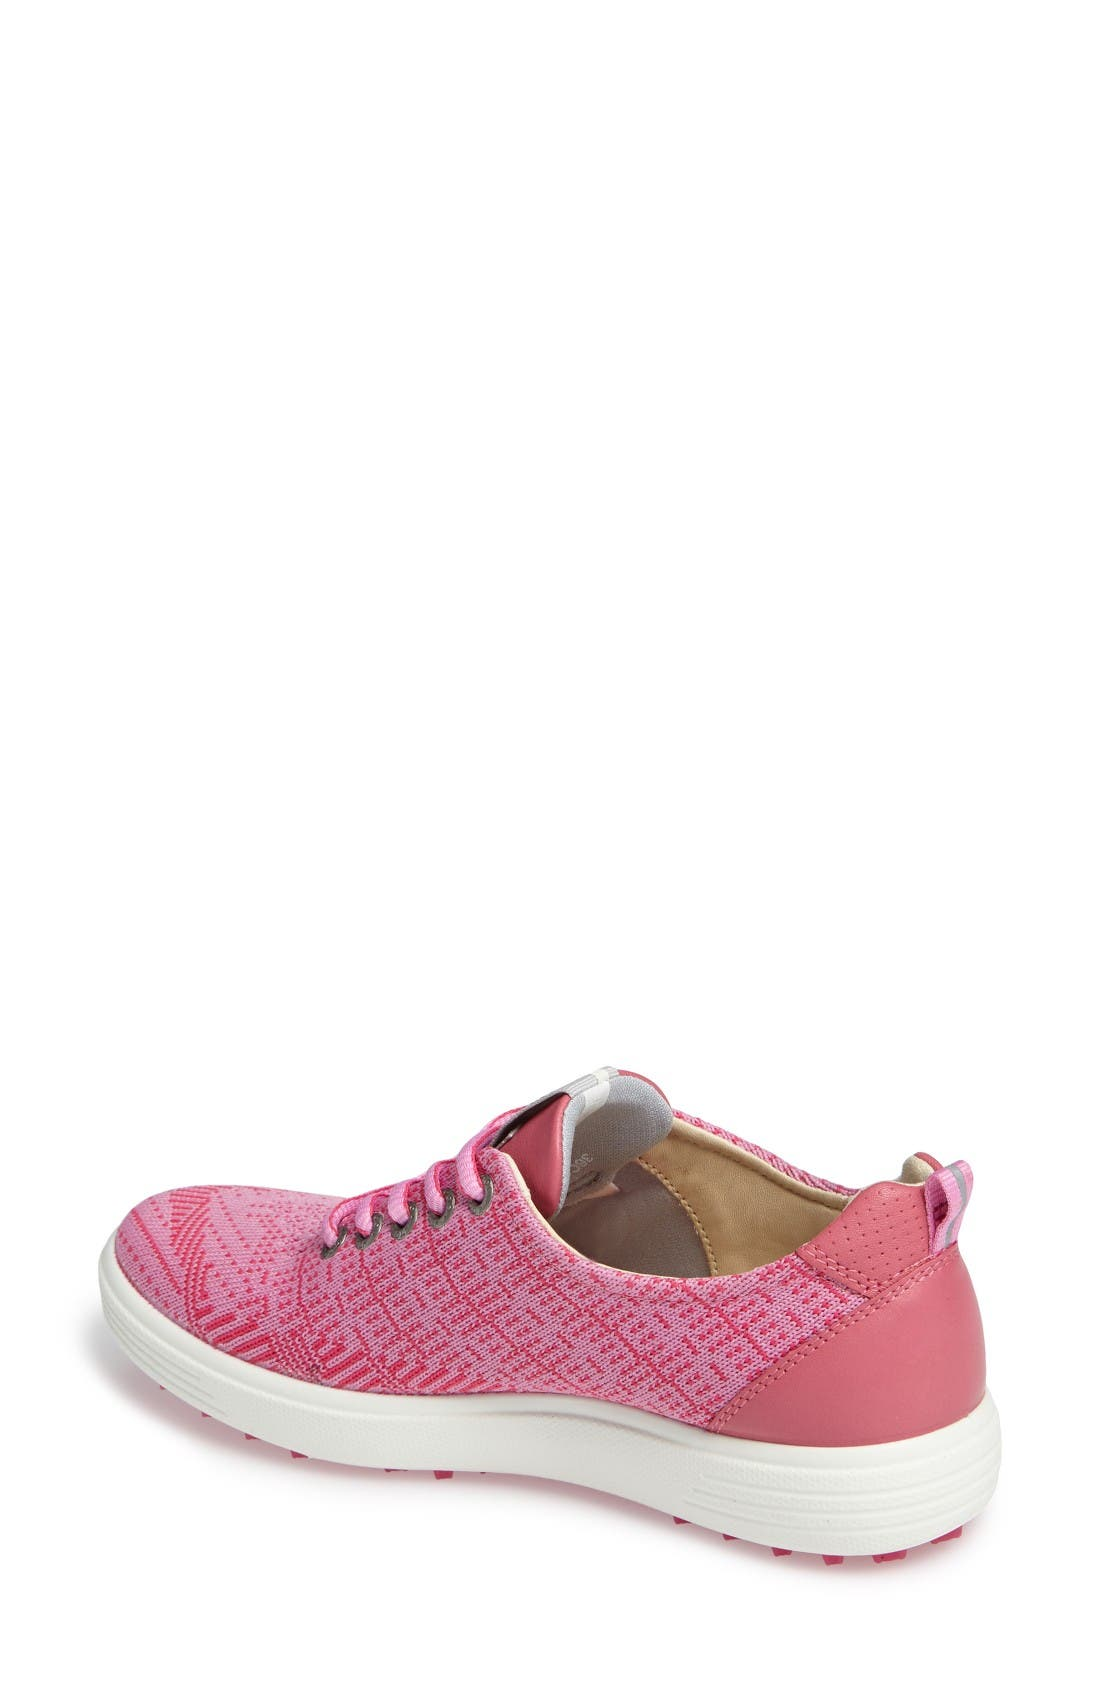 Casual Hybrid Knit Golf Sneaker,                             Alternate thumbnail 2, color,                             Pink/ Beetroot Leather